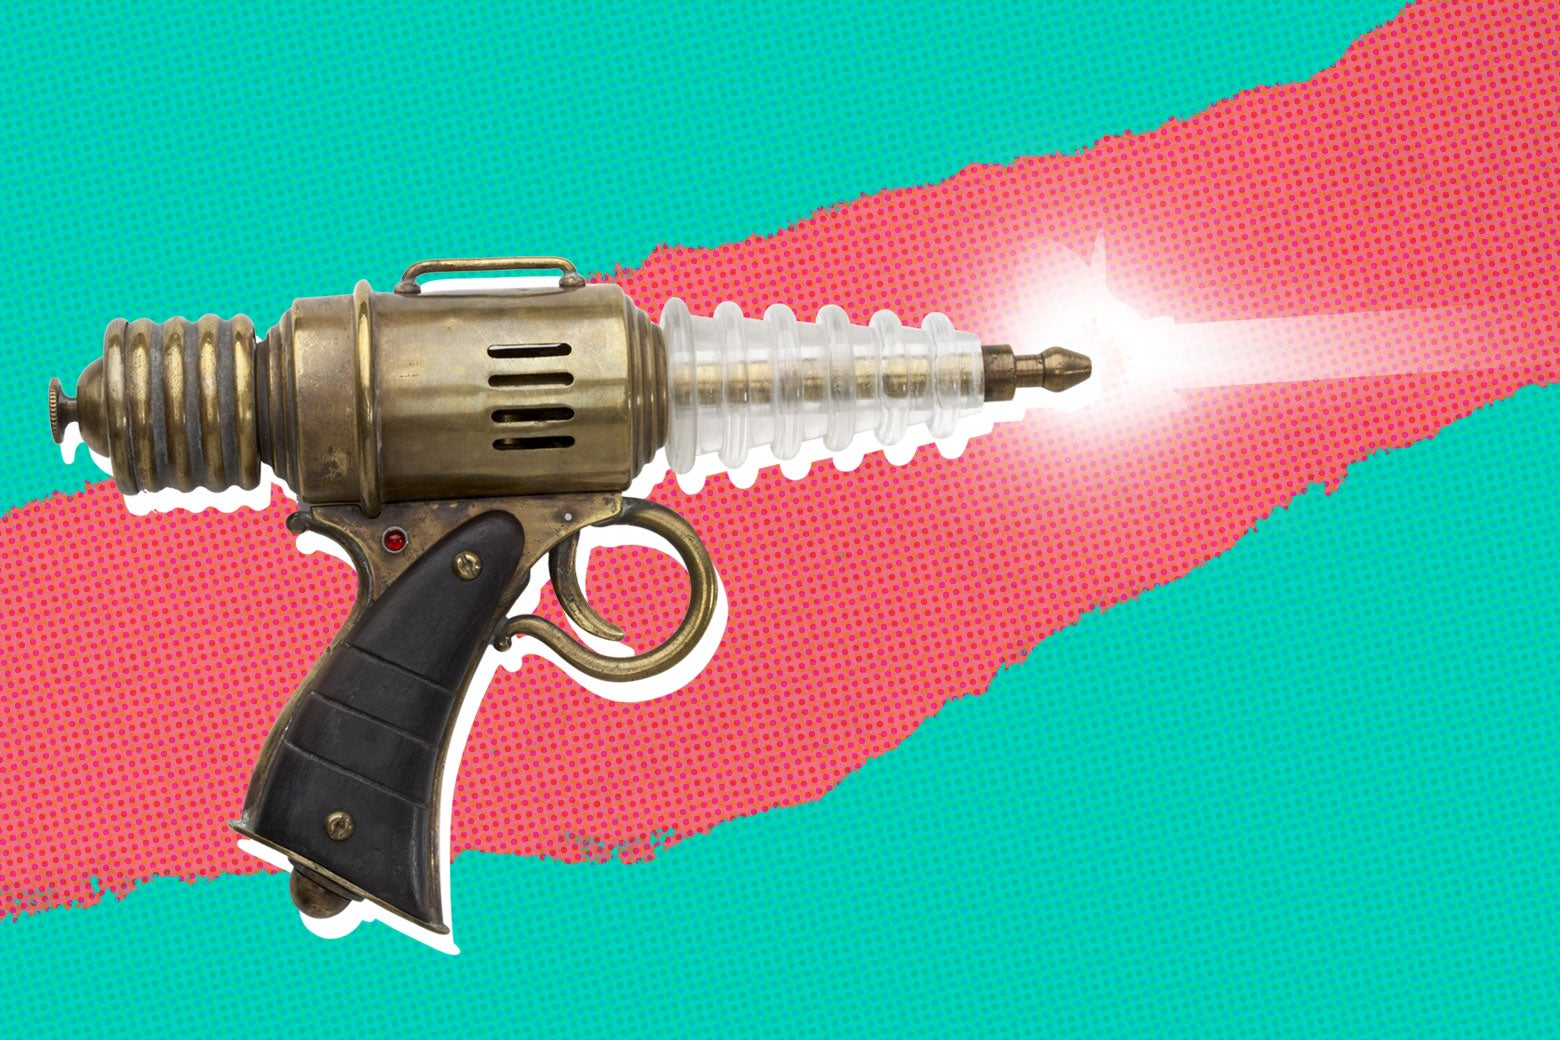 A death ray shooting from a laser gun.